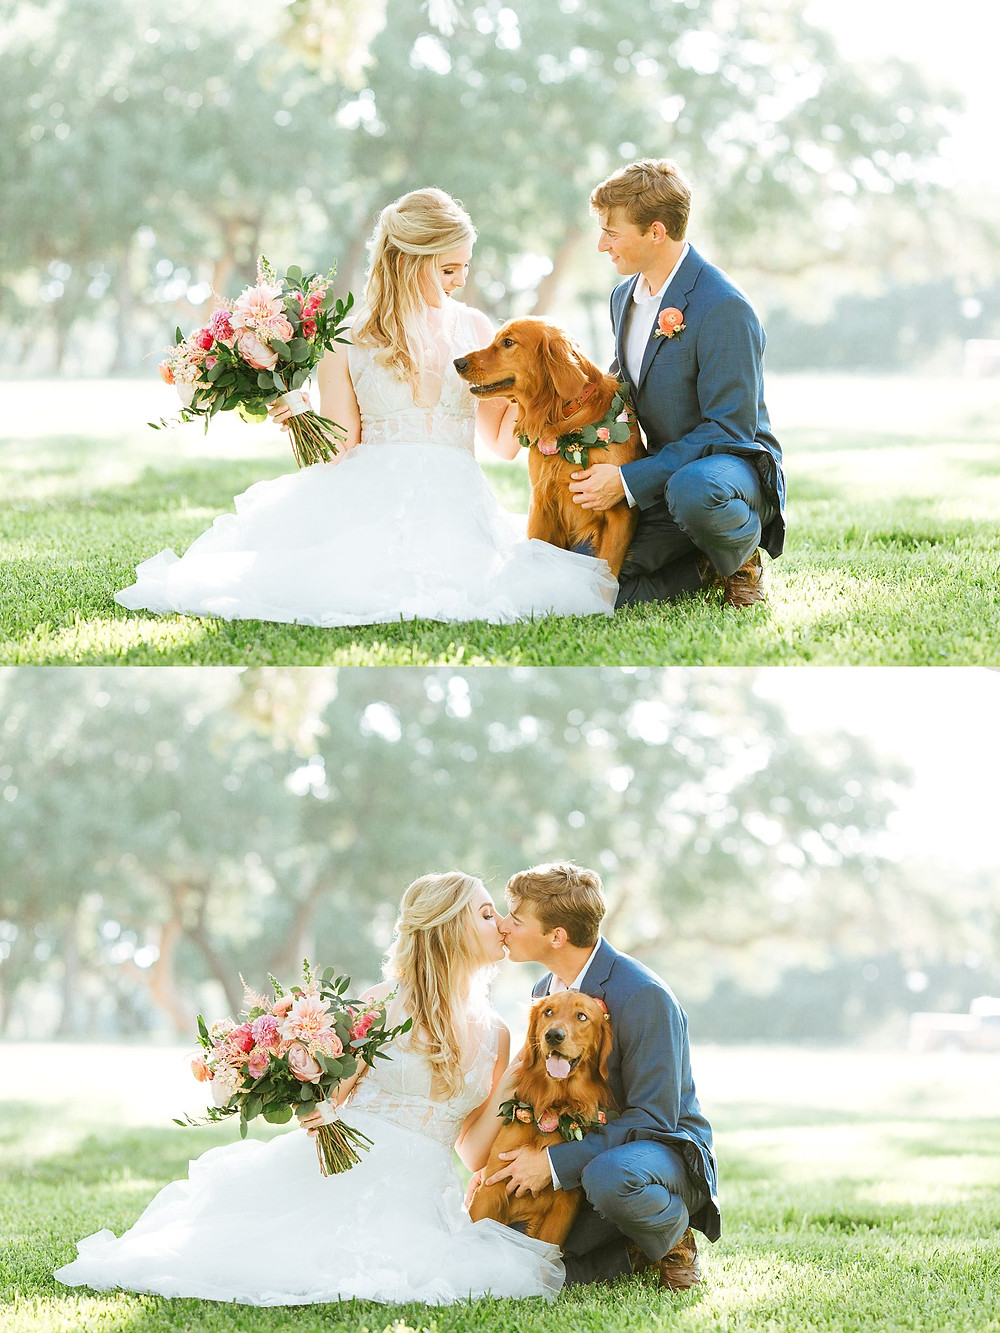 The Oaks at Boerne Wedding | Snap Chic Photography | Boerne and San Antonio Wedding Photographer | Wedding Photos with Dogs